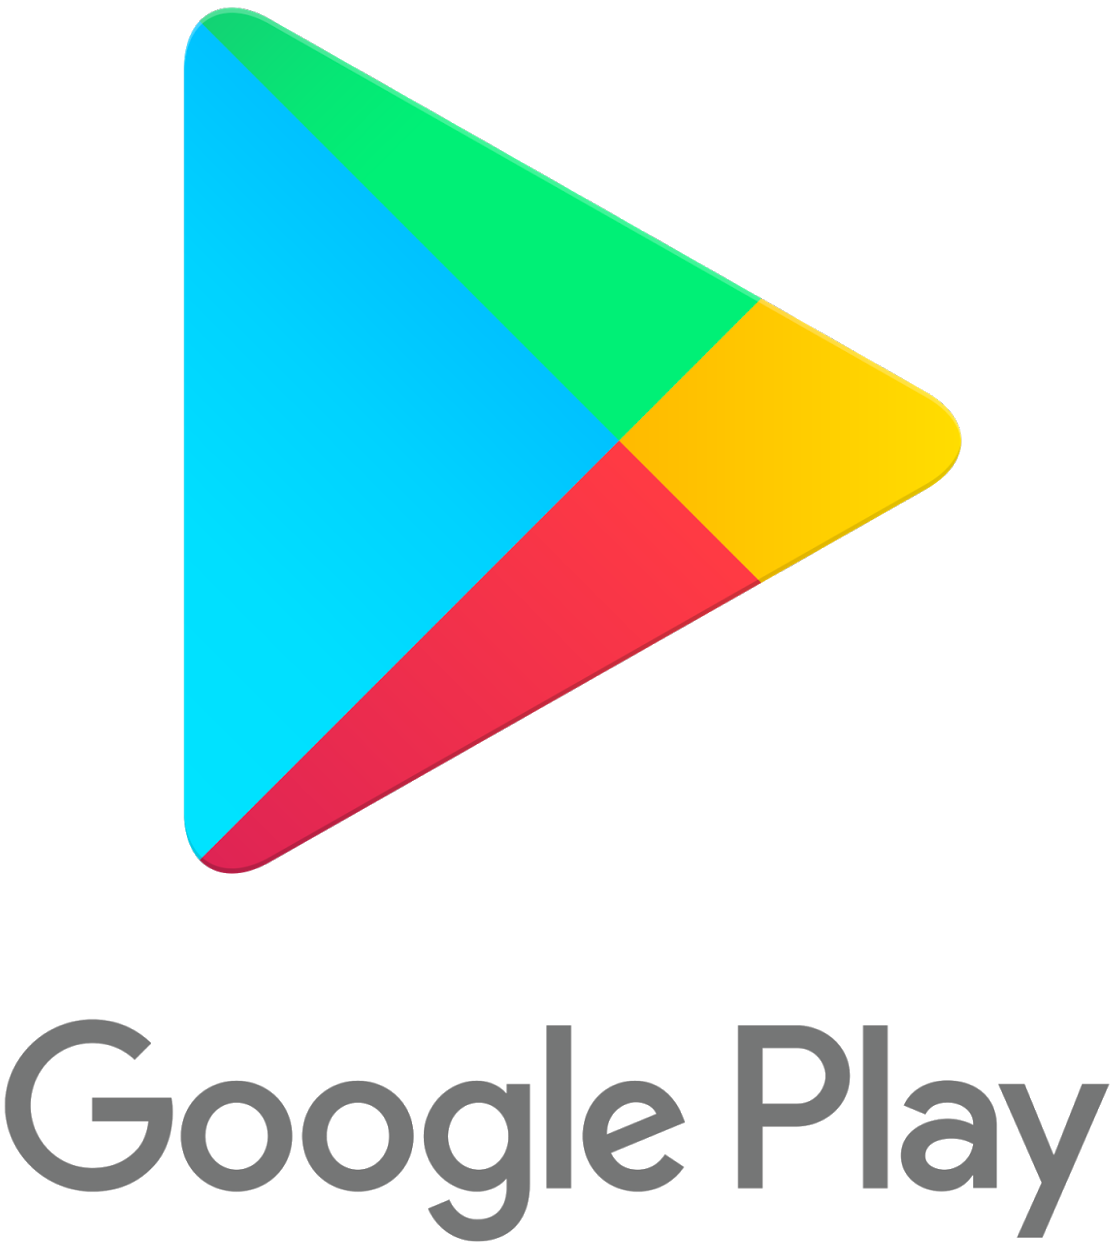 Google begins testing subscription service for Android apps and games